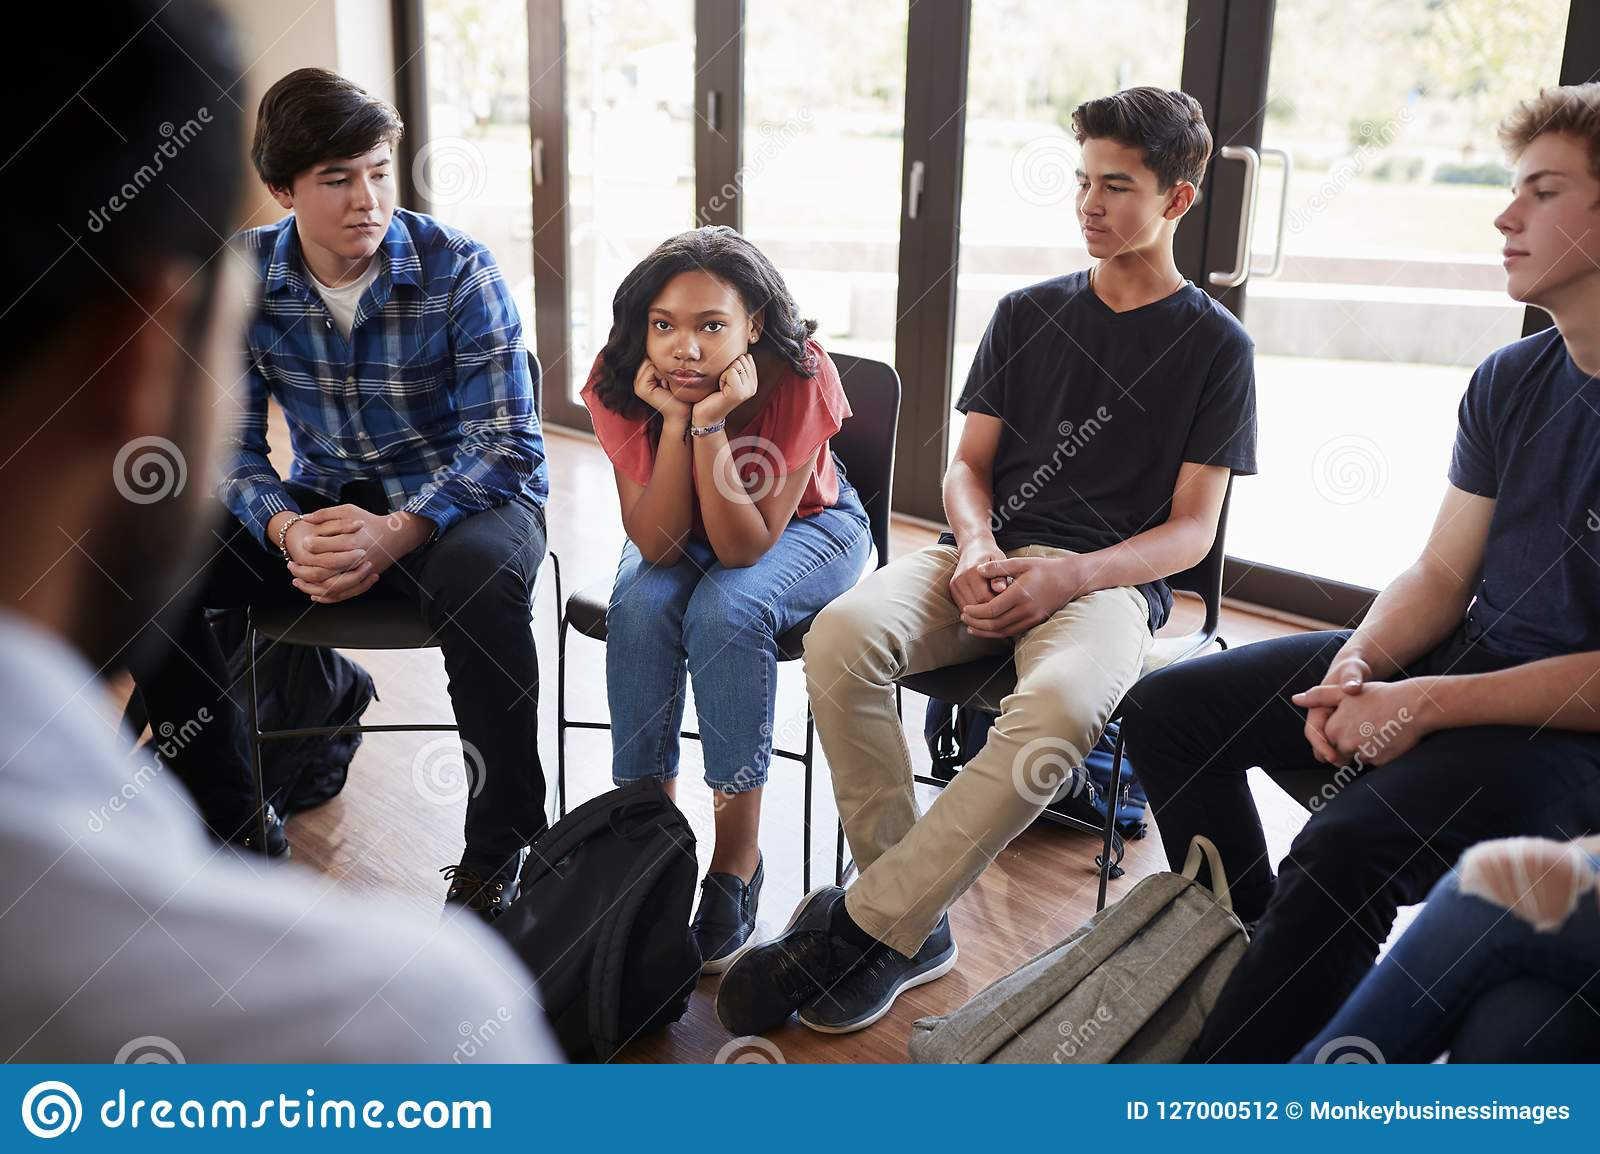 Unhappy Female Pupil In High School Discussion Group